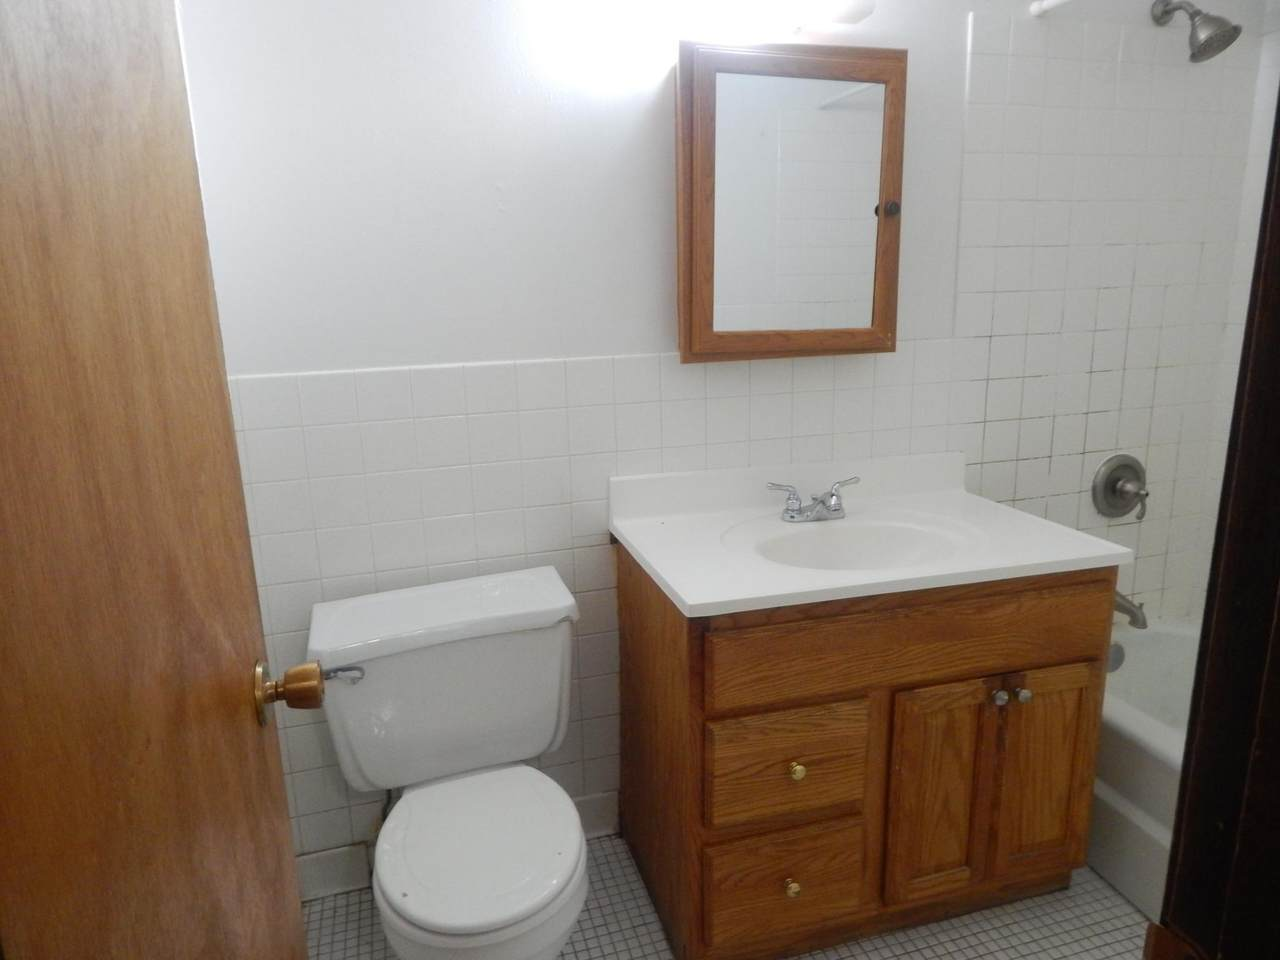 https://bt-photos.global.ssl.fastly.net/northstar/1280_boomver_2_5742391-2.jpg